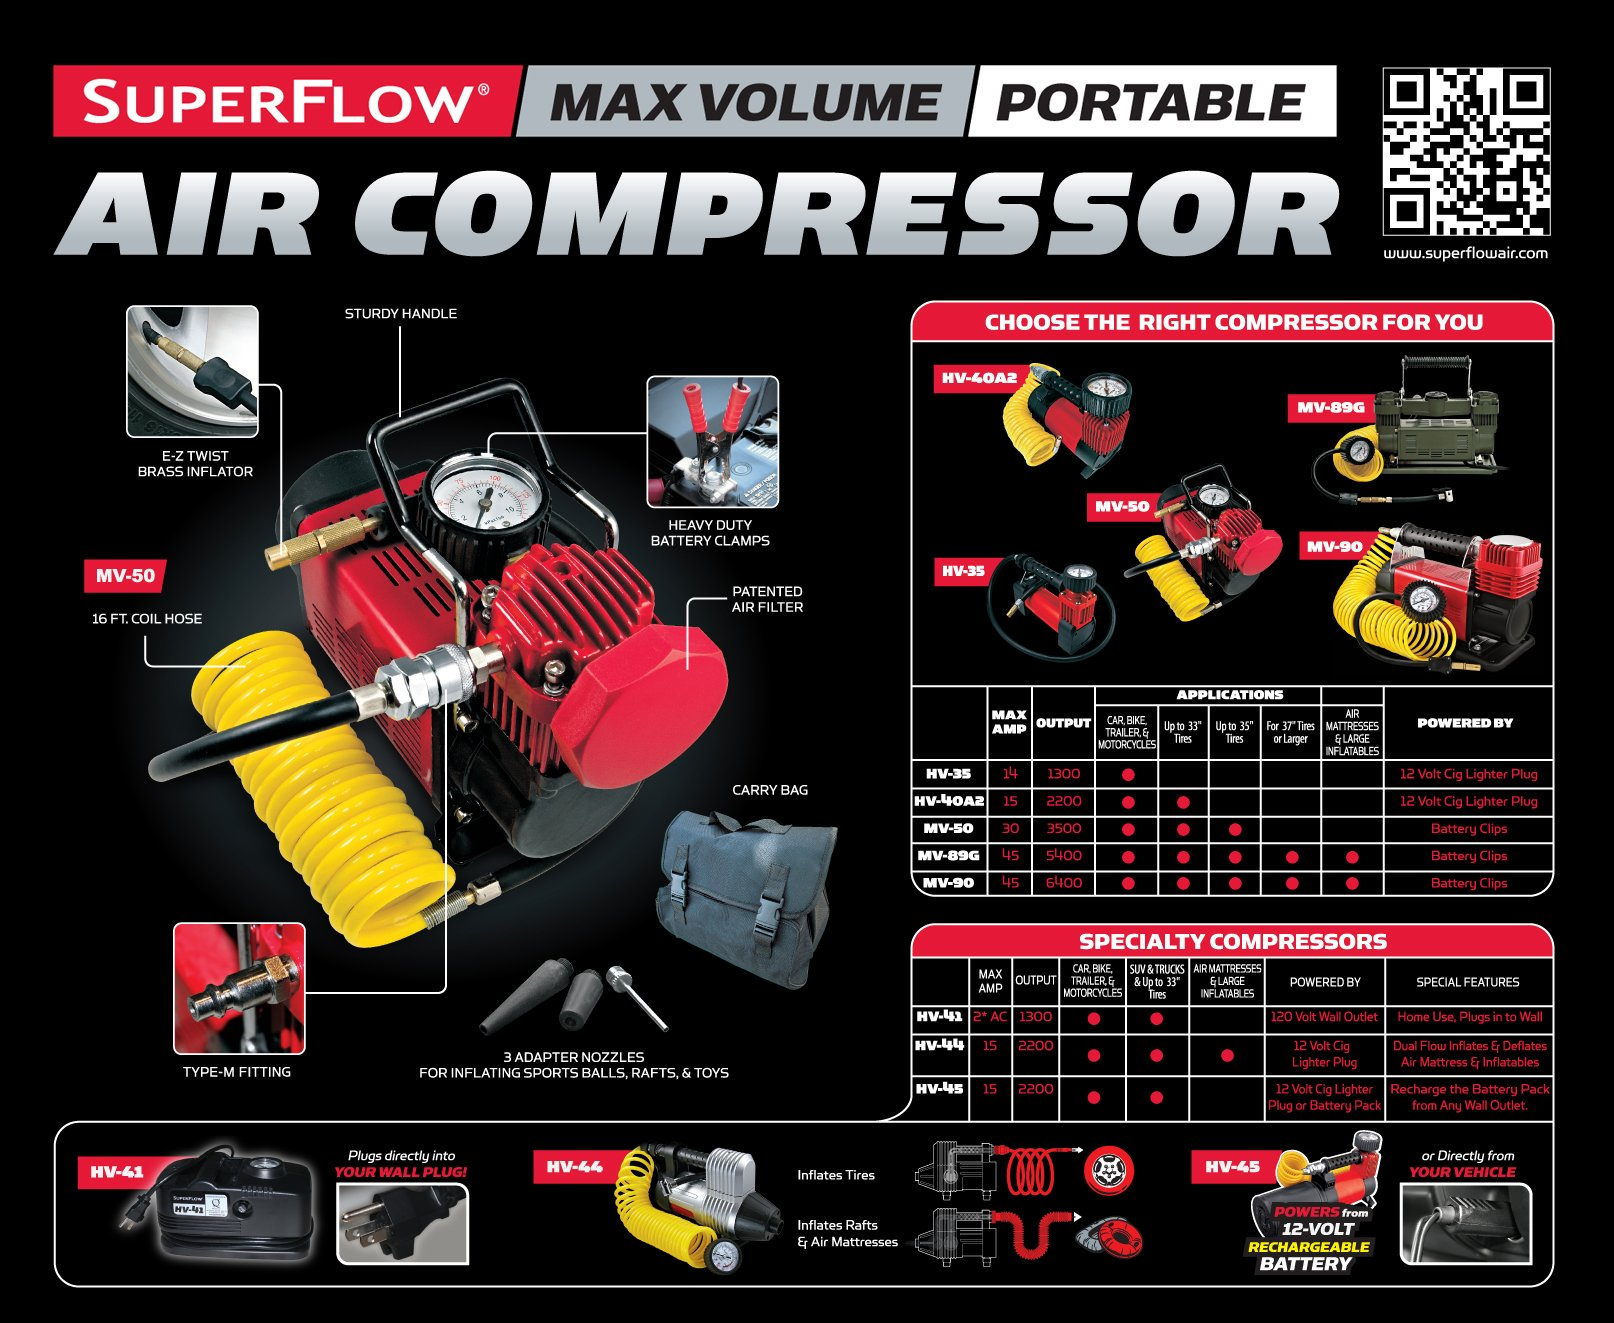 Q Industries 12 Volt Air Compressor, Portable Air Pump, 12 volt, Tire Inflator, MV-50 Air Compressor by SuperFlow for inflating full size 4 x 4, Jeep, truck, SUV and RV Tires by Q Industries (Image #4)